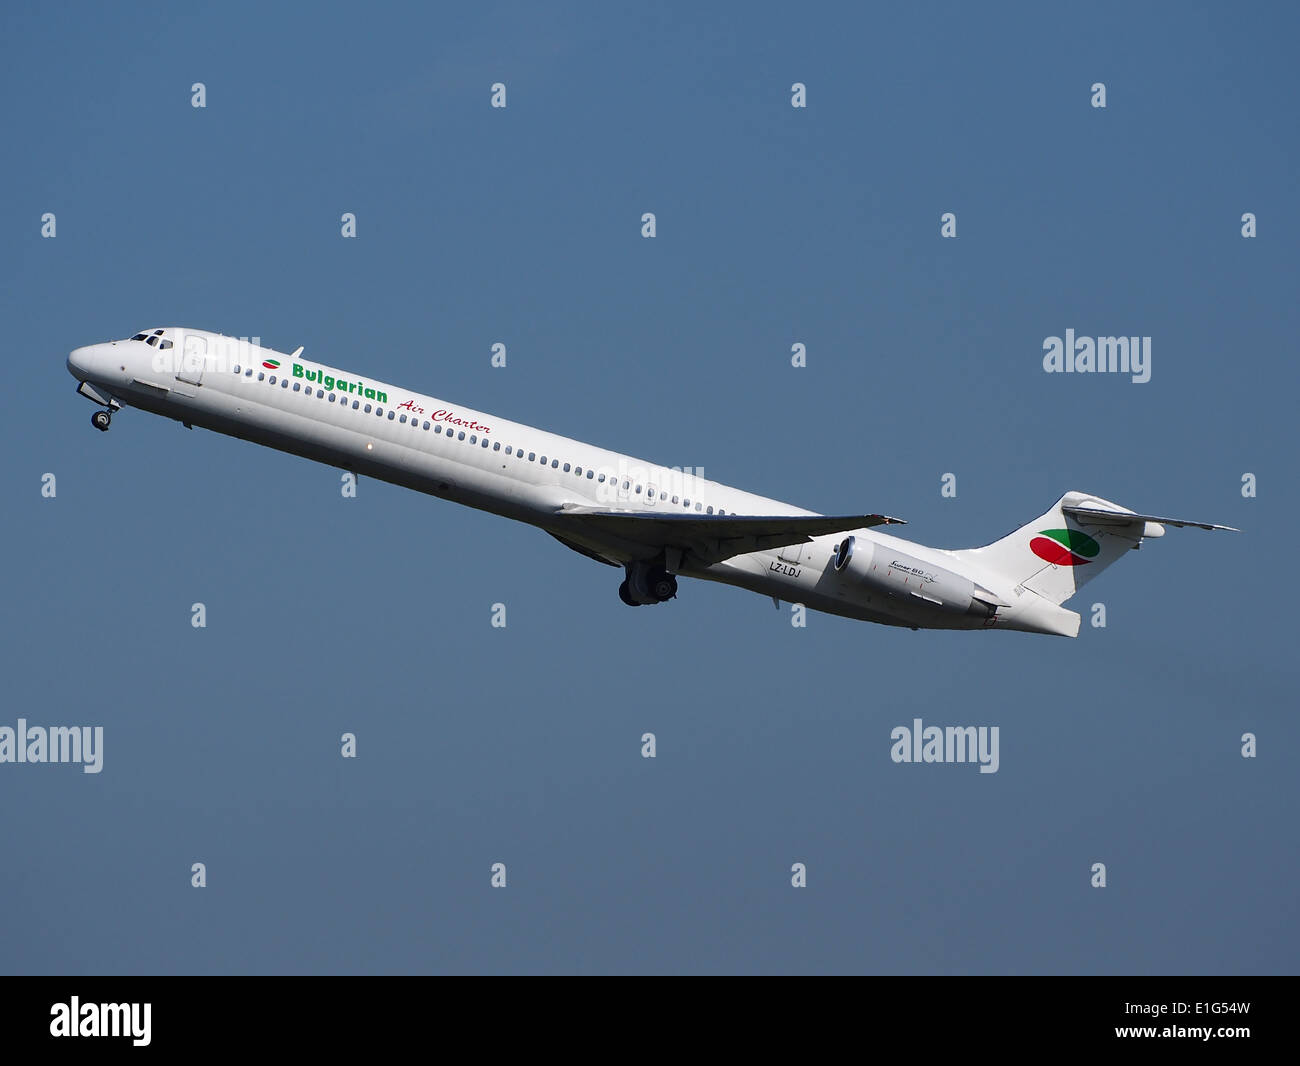 LZ-LDJ Bulgarian Air Charter McDonnell Douglas MD-82 - cn 53230 at Schiphol (AMS - EHAM), The Netherlands, 16may2014 - Stock Image